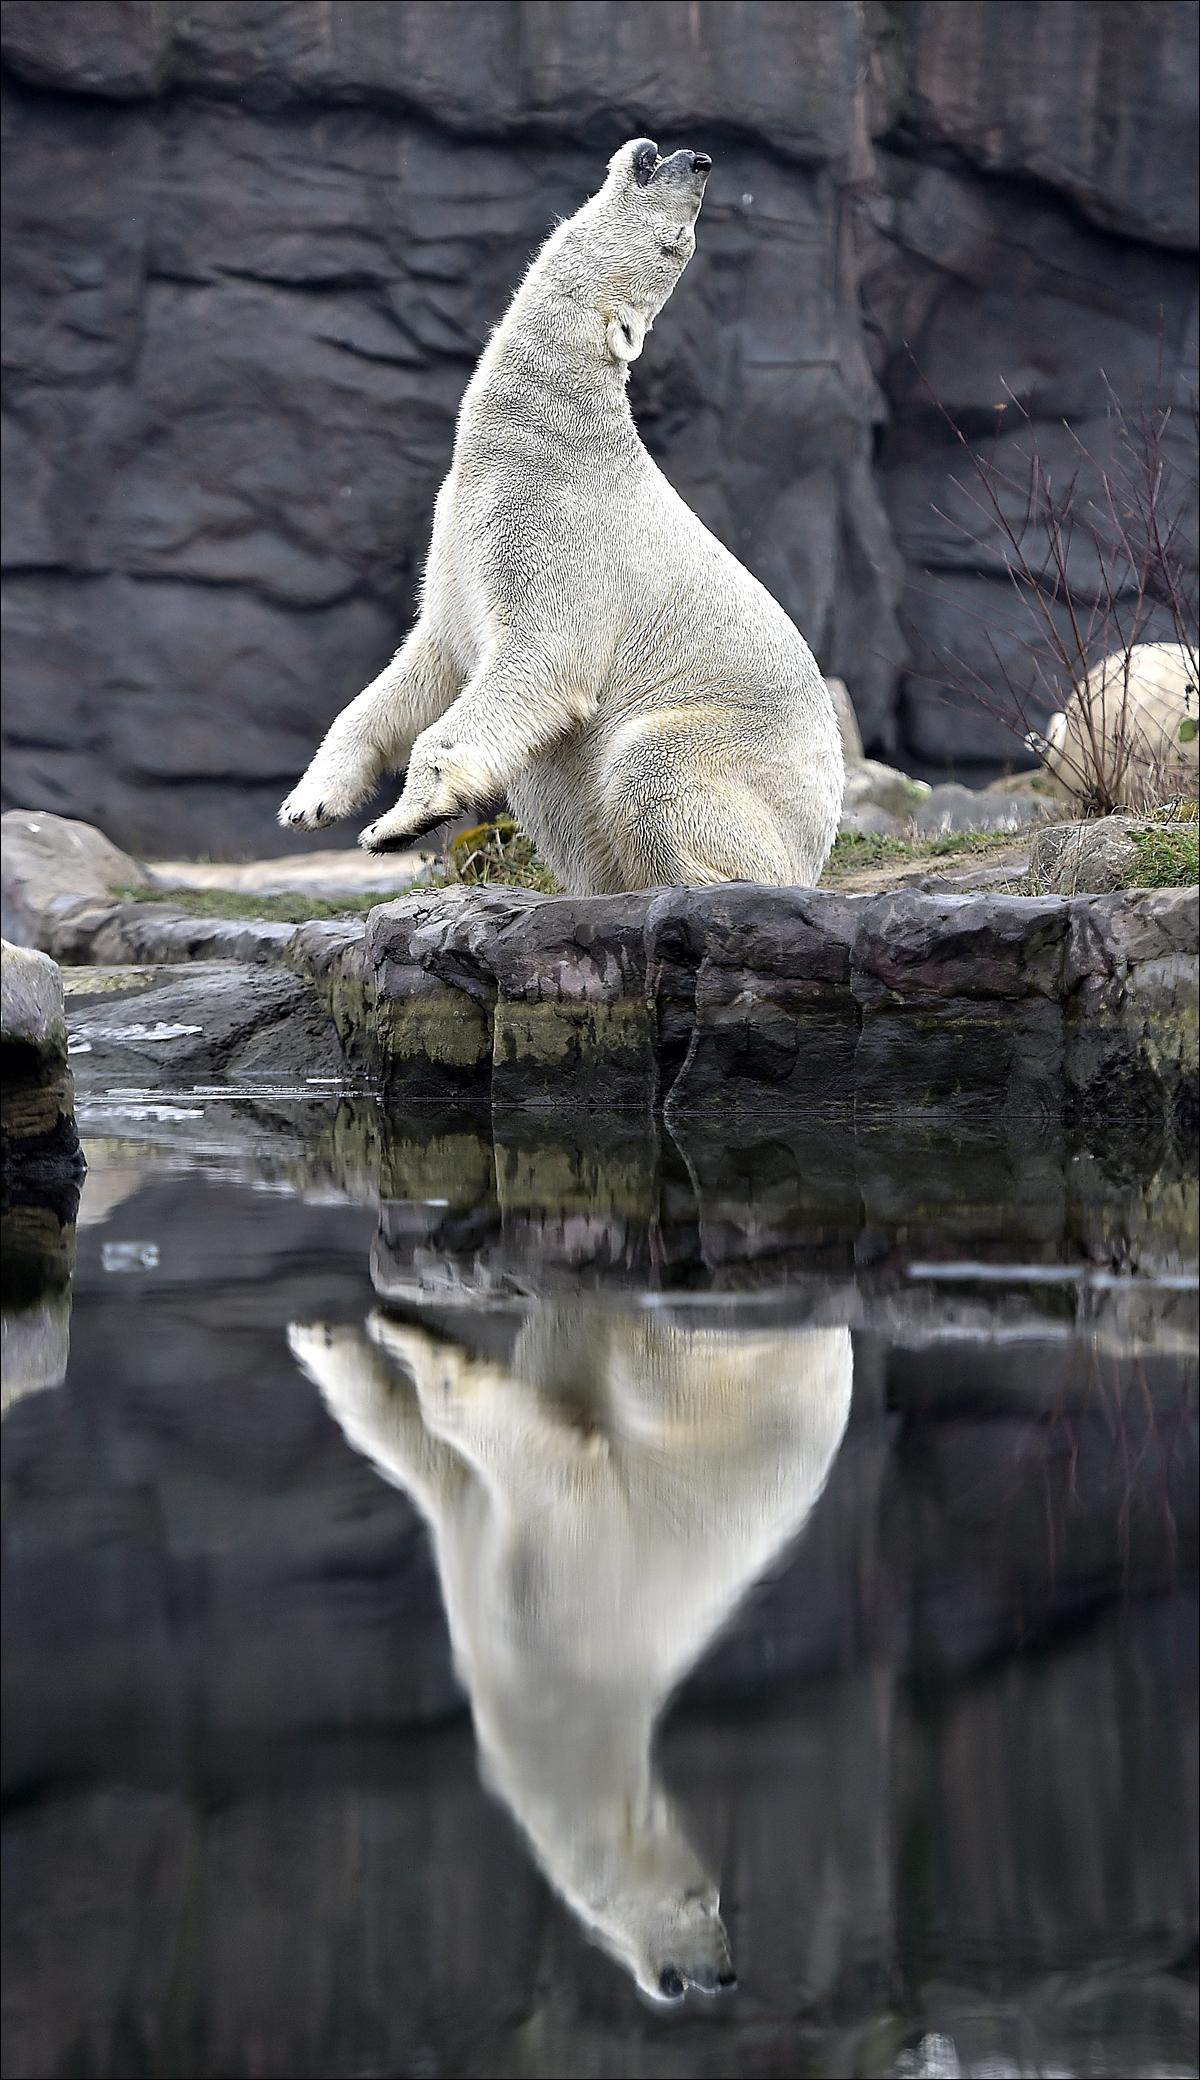 A polar bear enjoys the cold winter weather at the zoo in Gelsenkirchen, Germany, Wednesday, Jan. 20, 2016. (AP Photo/Martin Meissner)